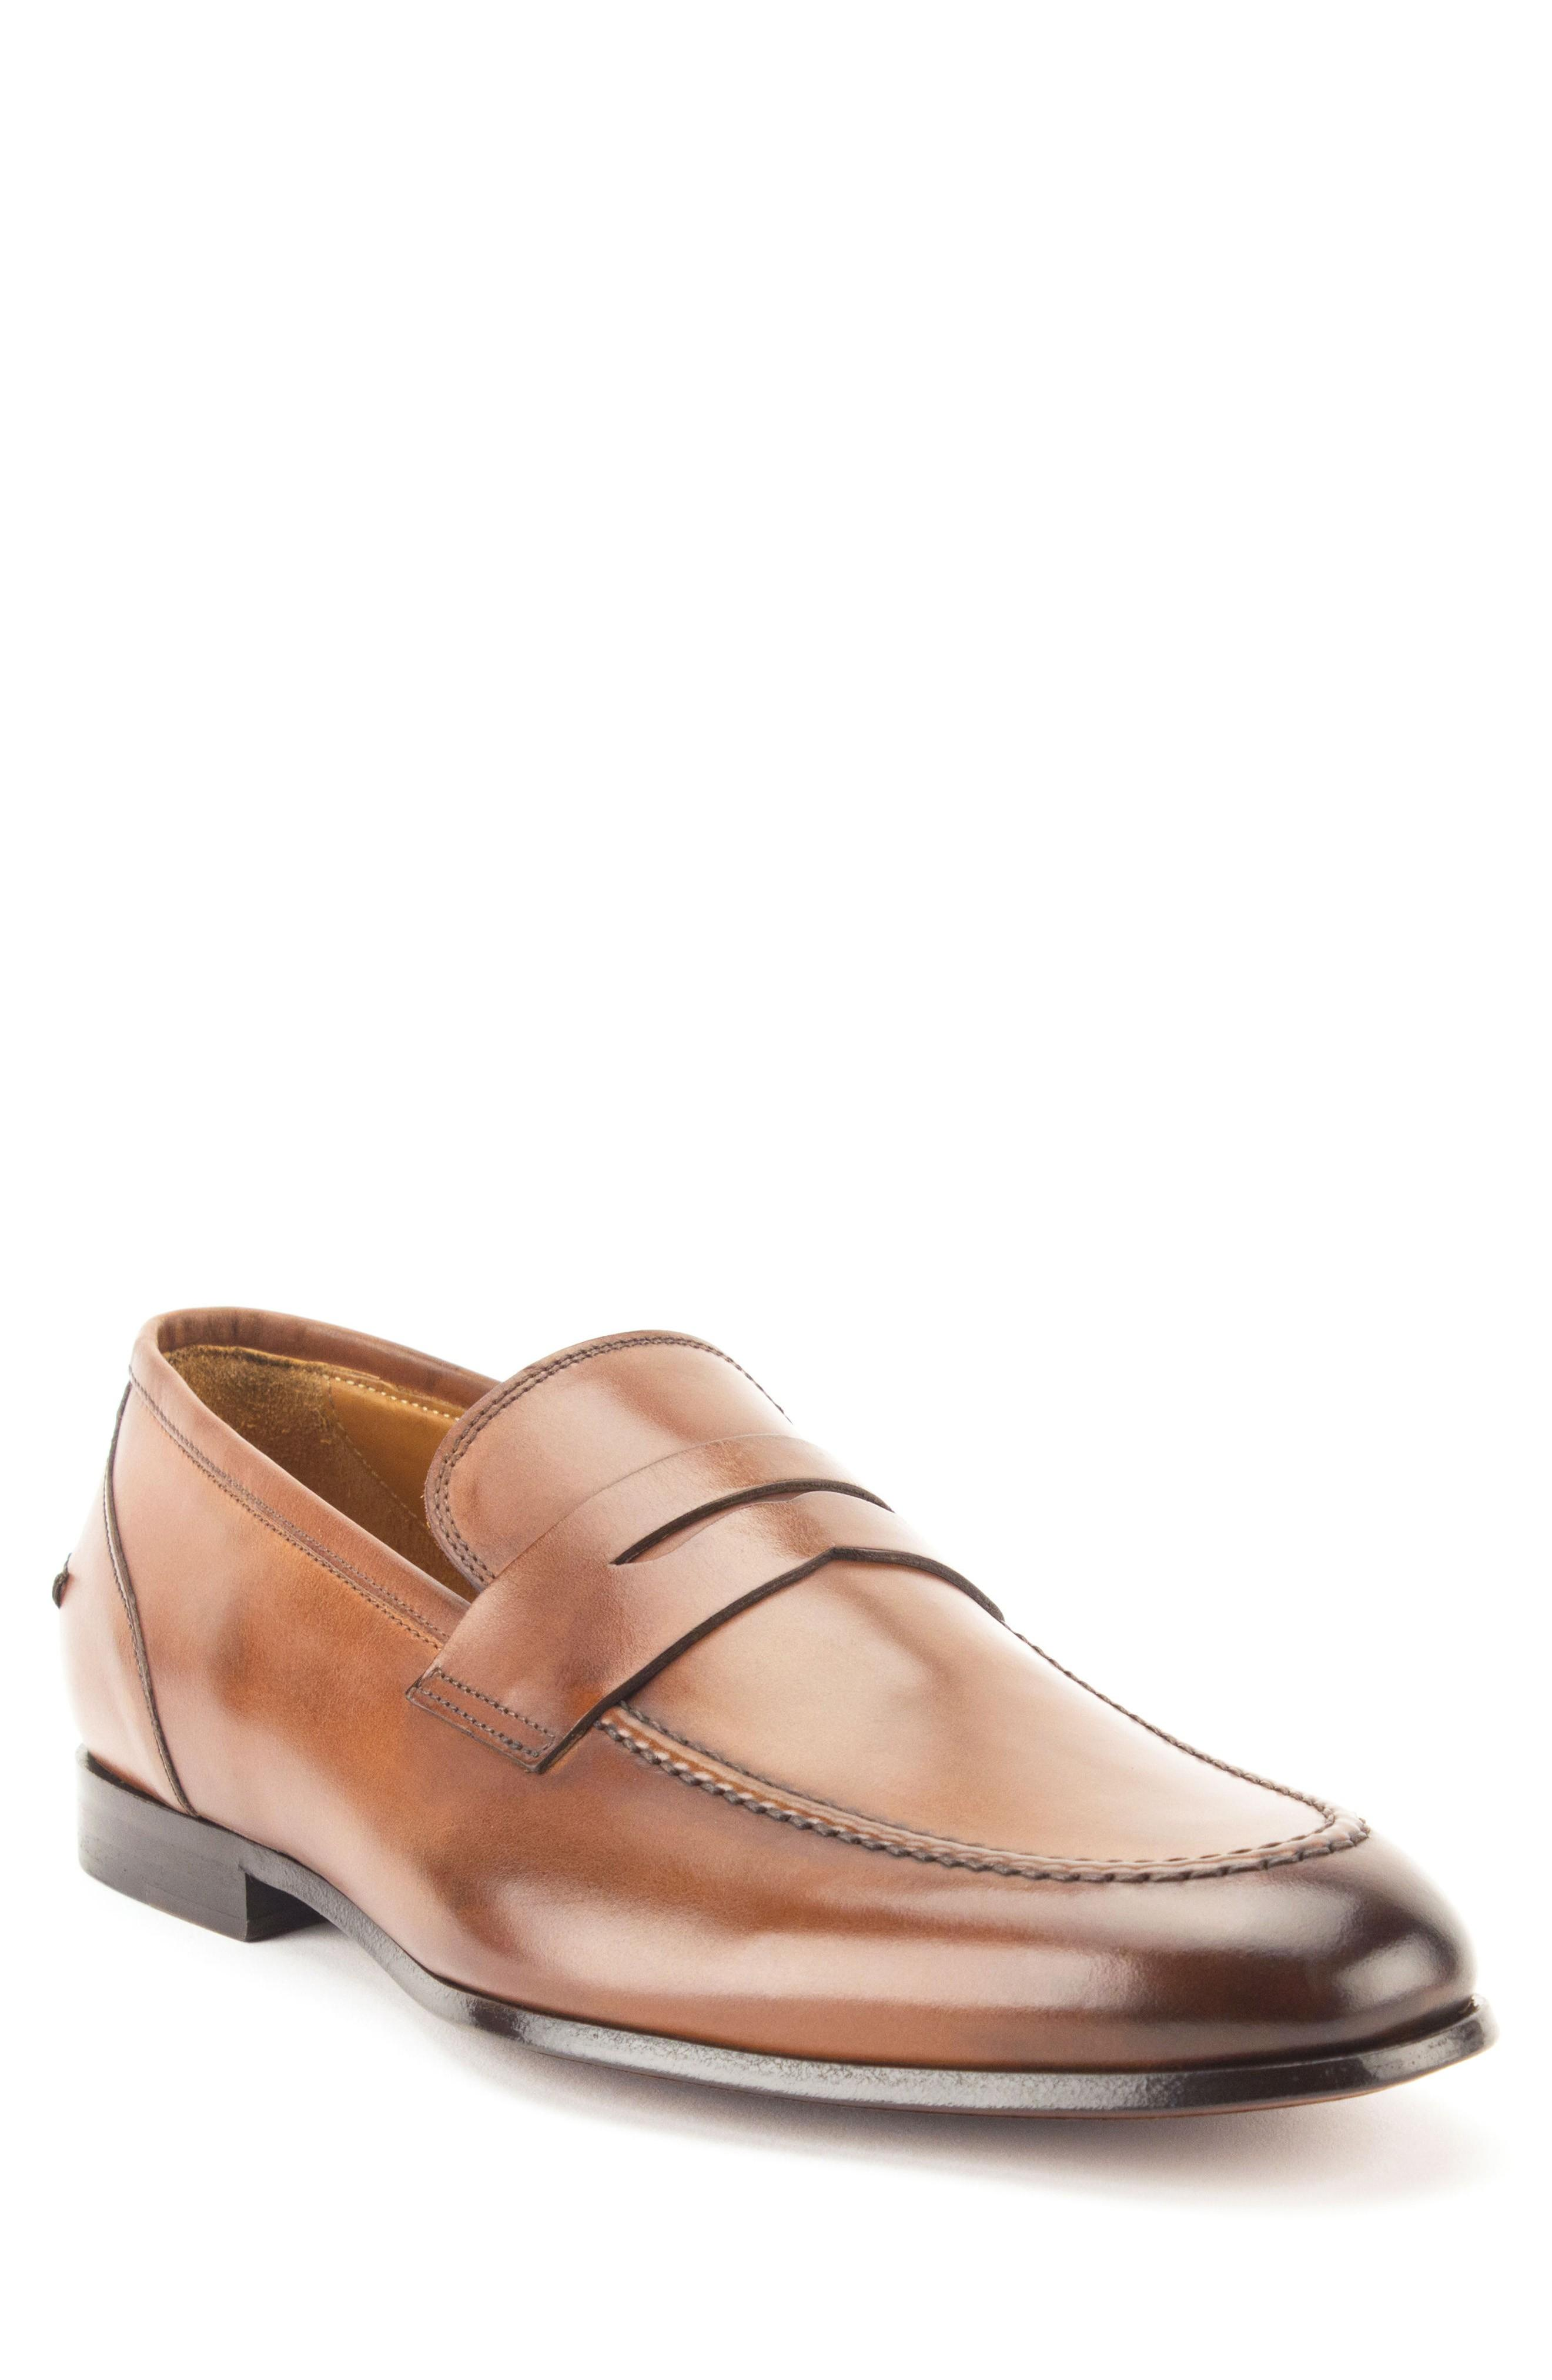 8815dd201df Style Name  Gordon Rush Coleman Apron Toe Penny Loafer (Men). Style Number   5548098.